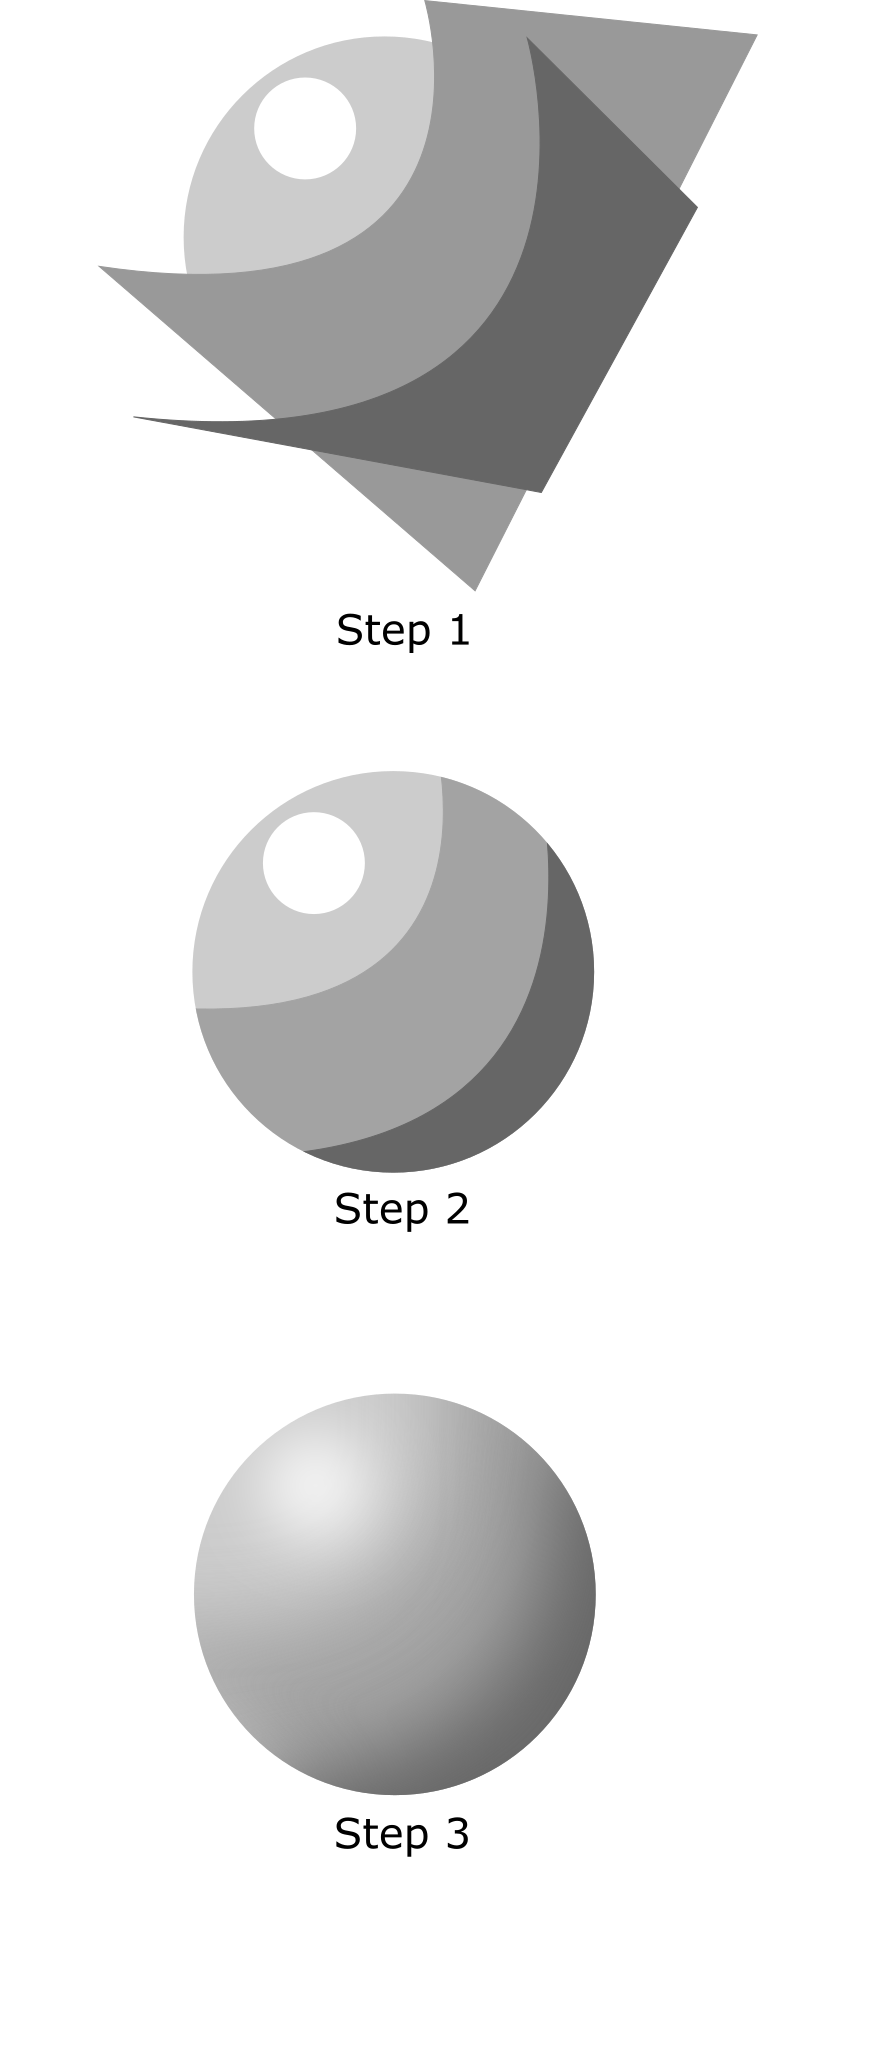 Drawing raindrops shading. Inkscape tutorial by x